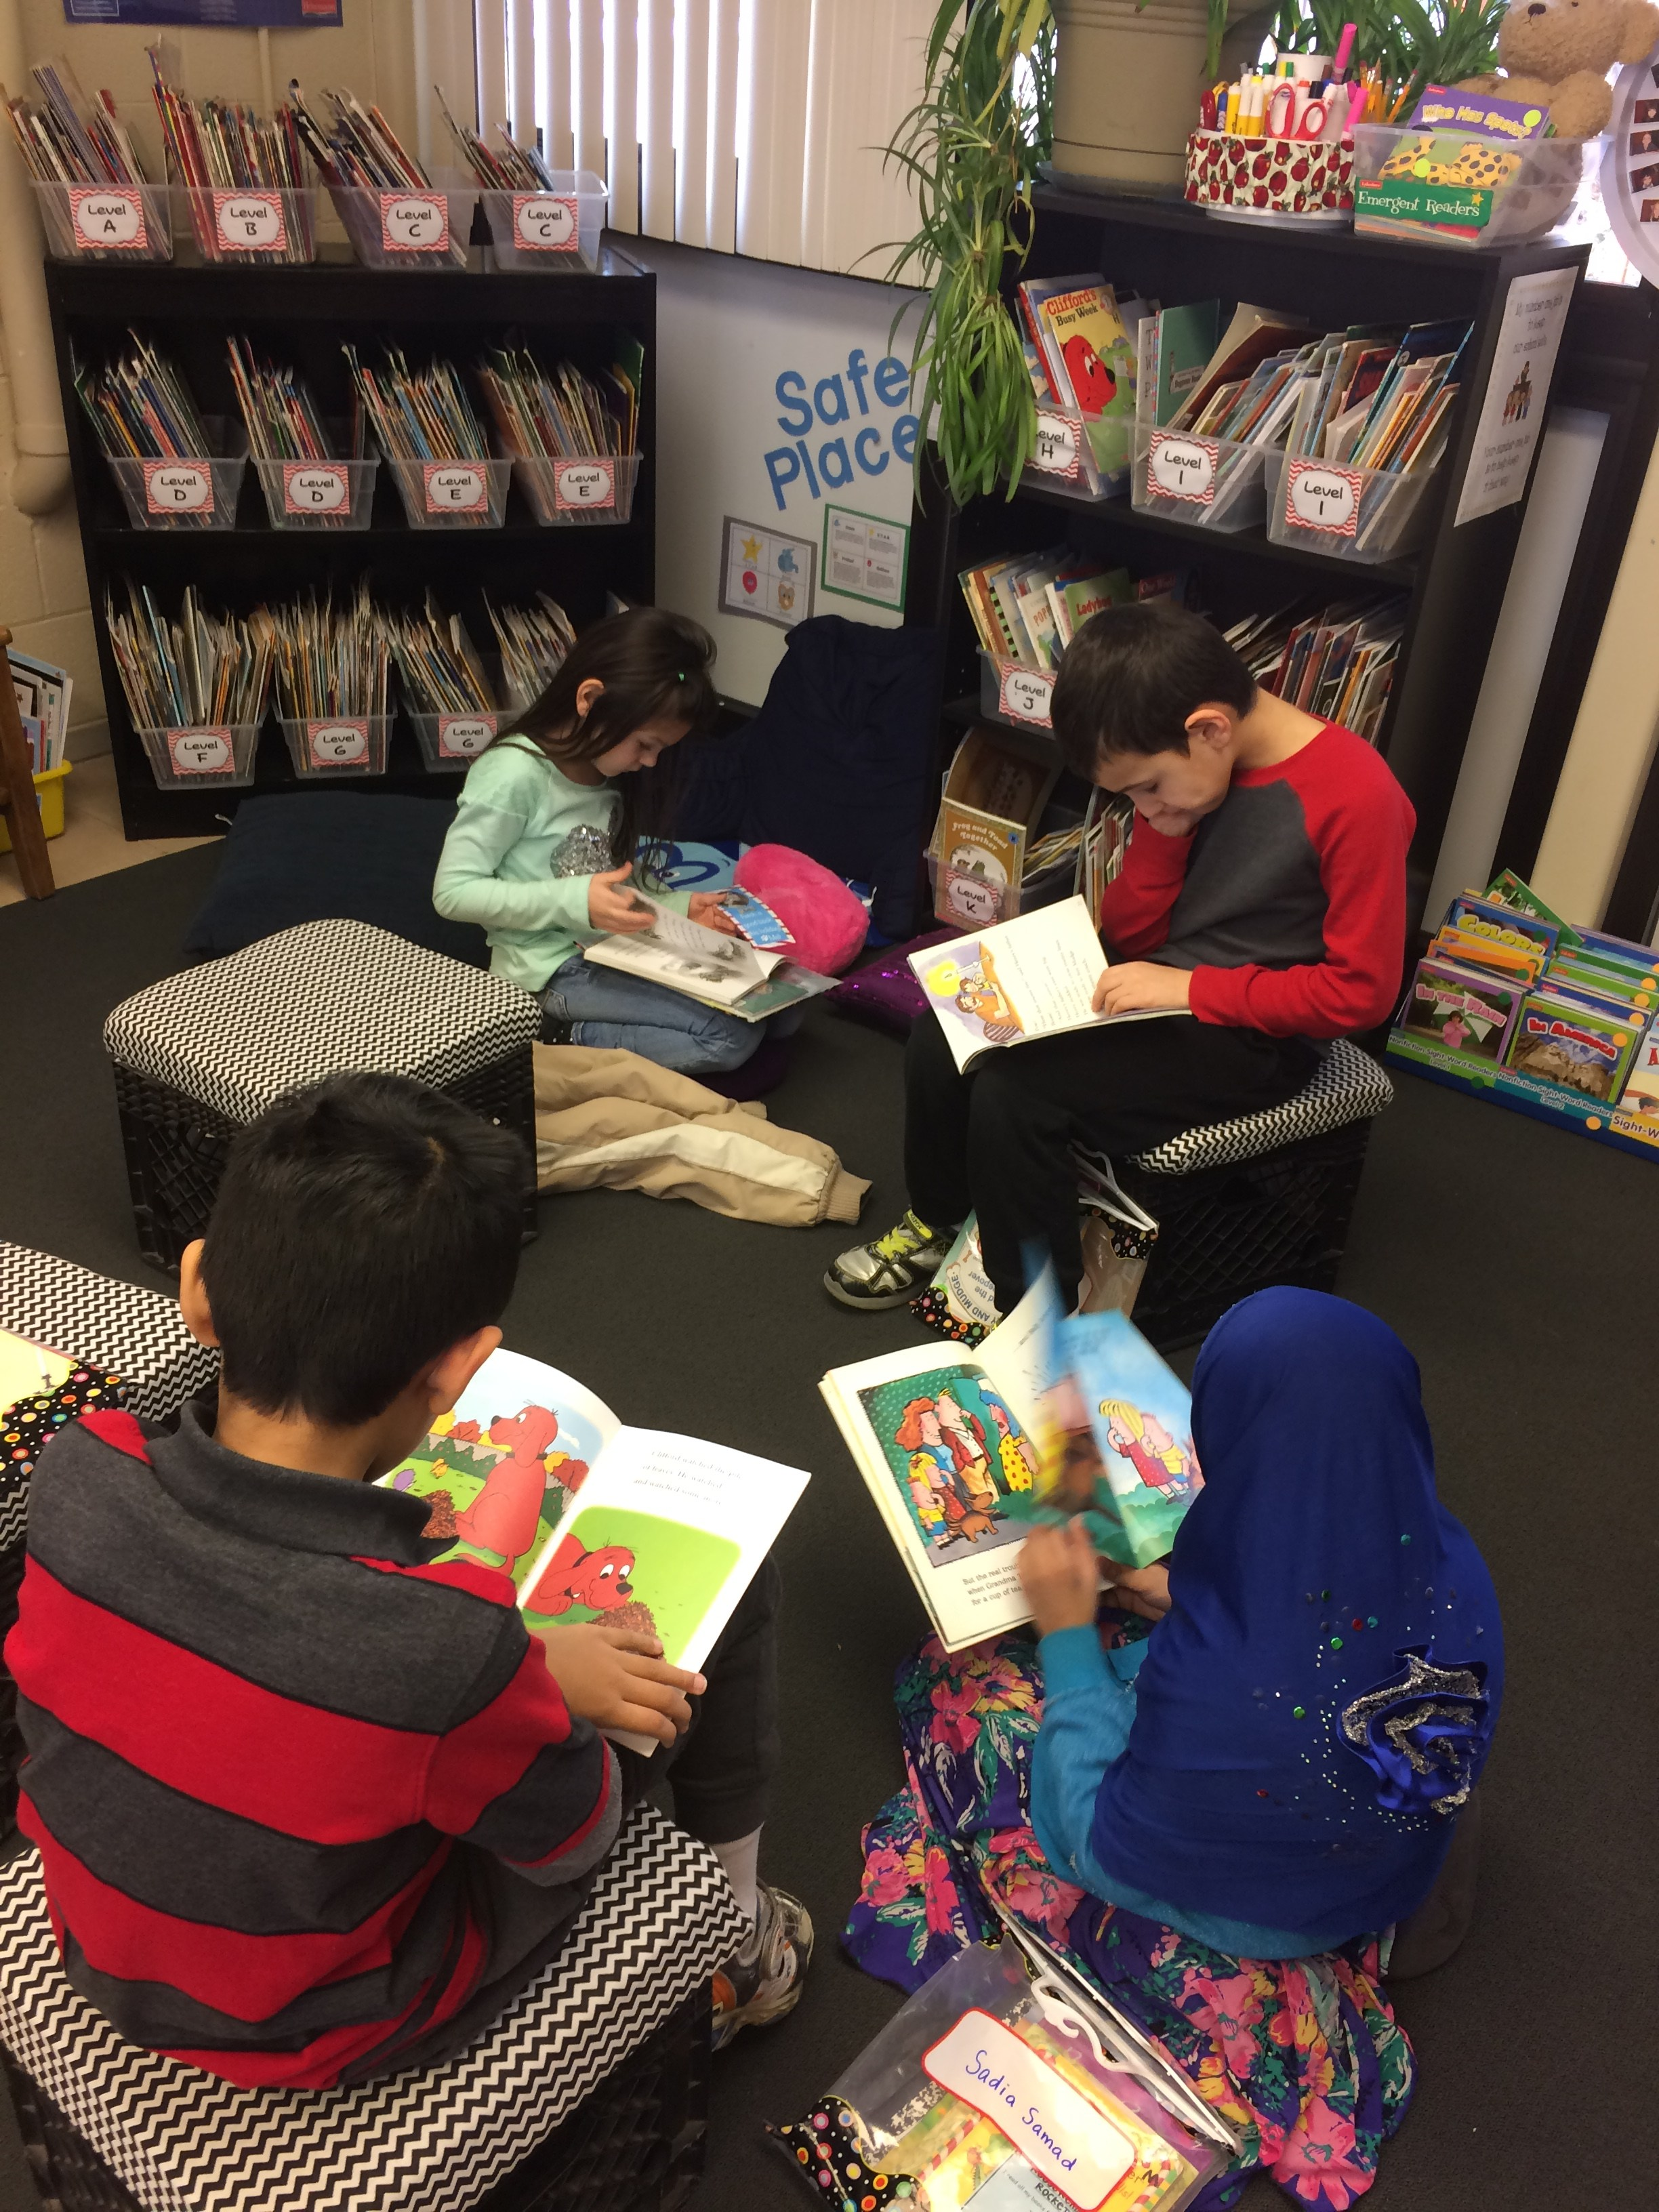 Four students reading in a circle on the floor